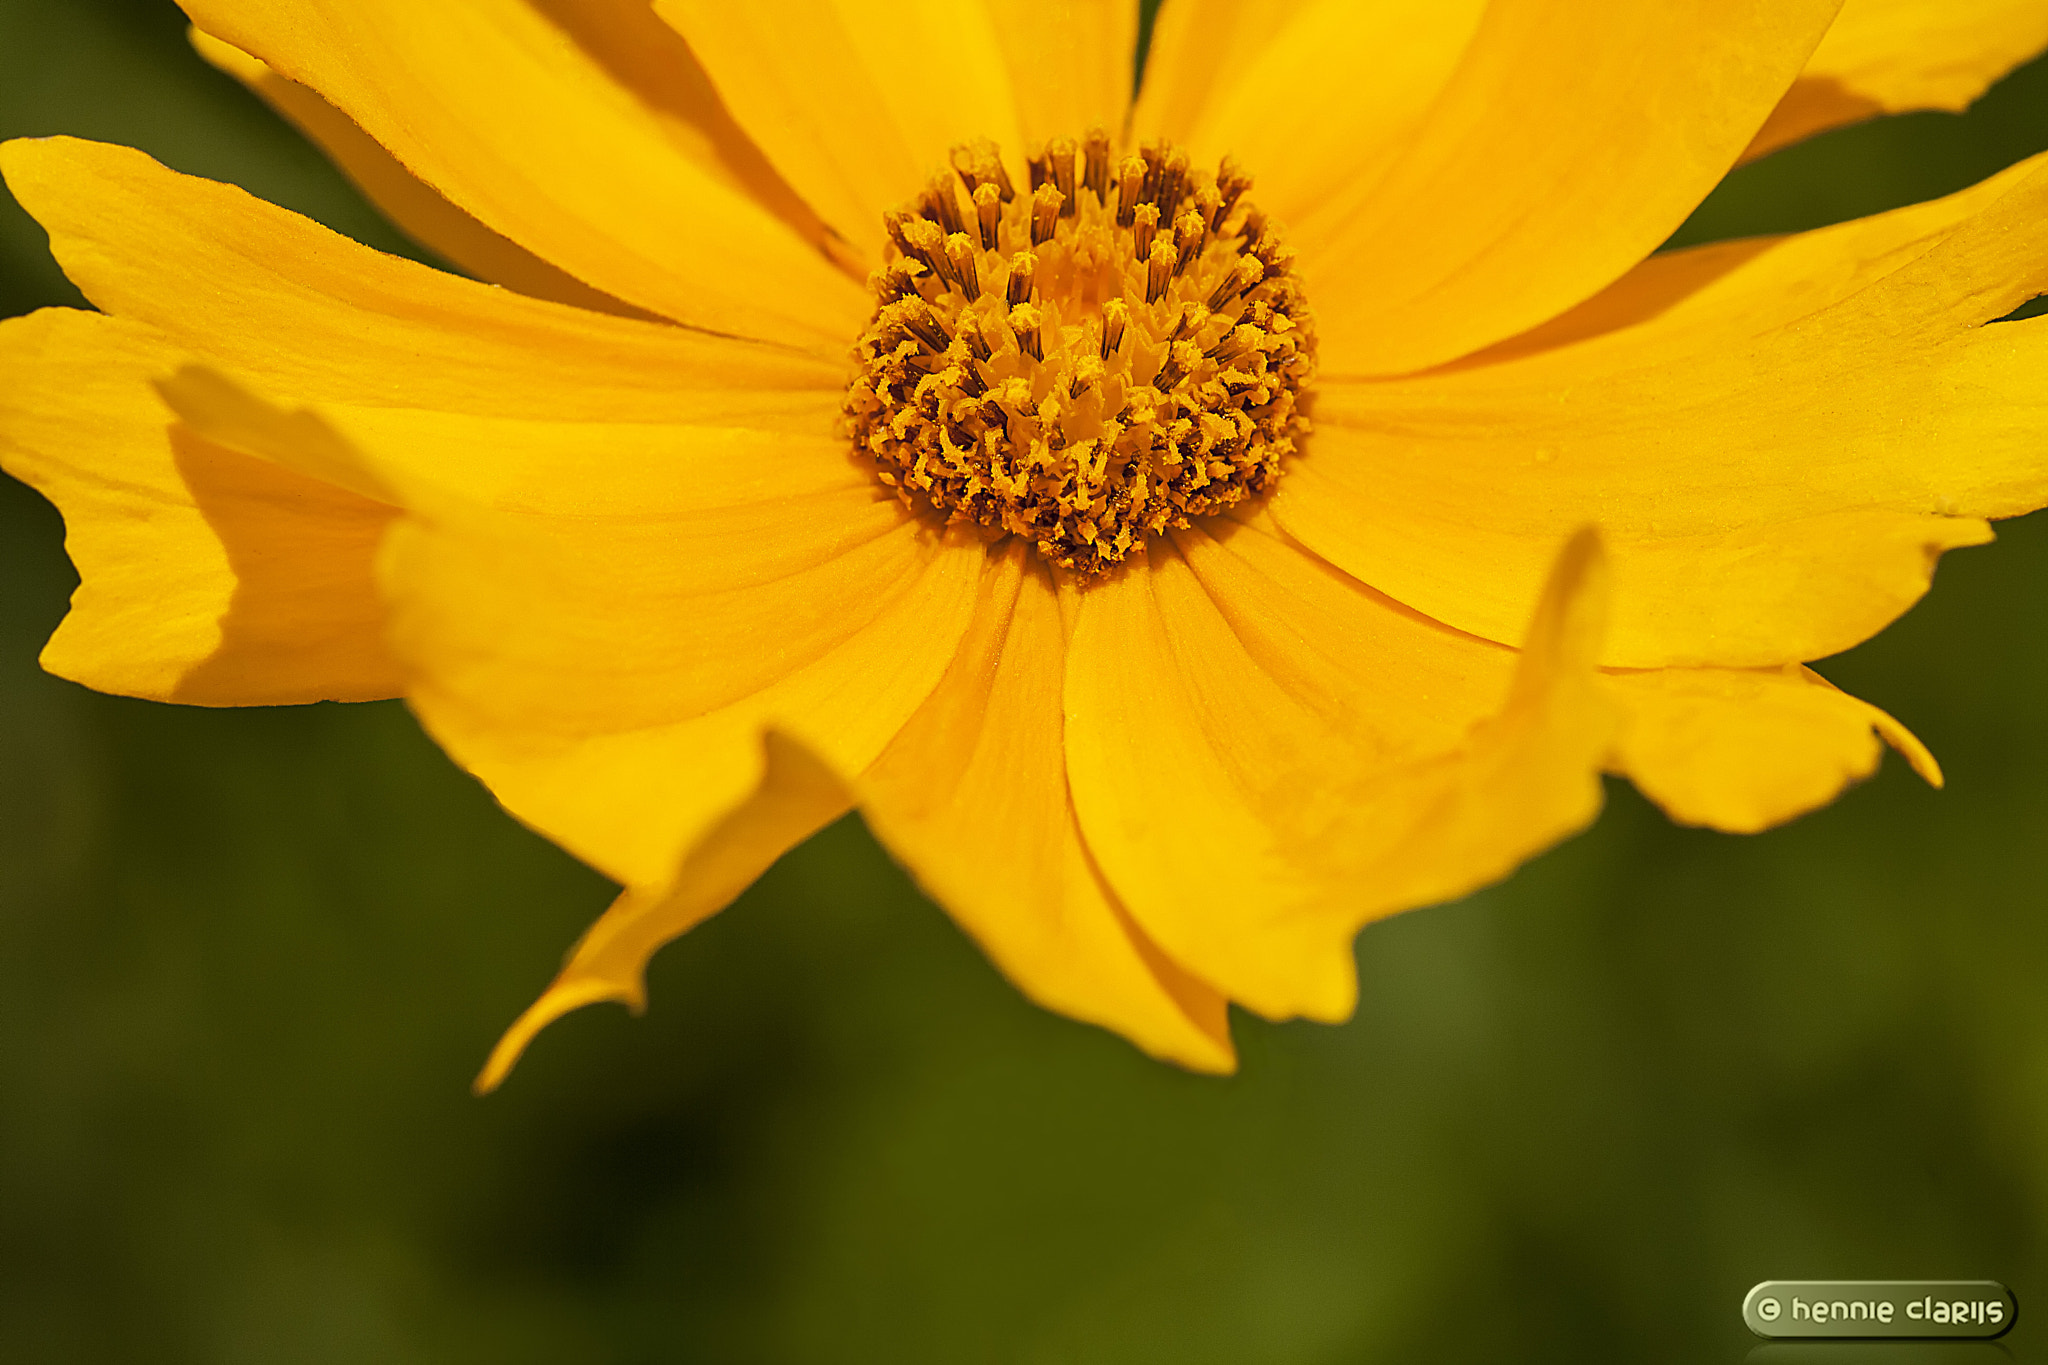 Photograph Coreopsis, Tickseed by Hennie Clarijs on 500px